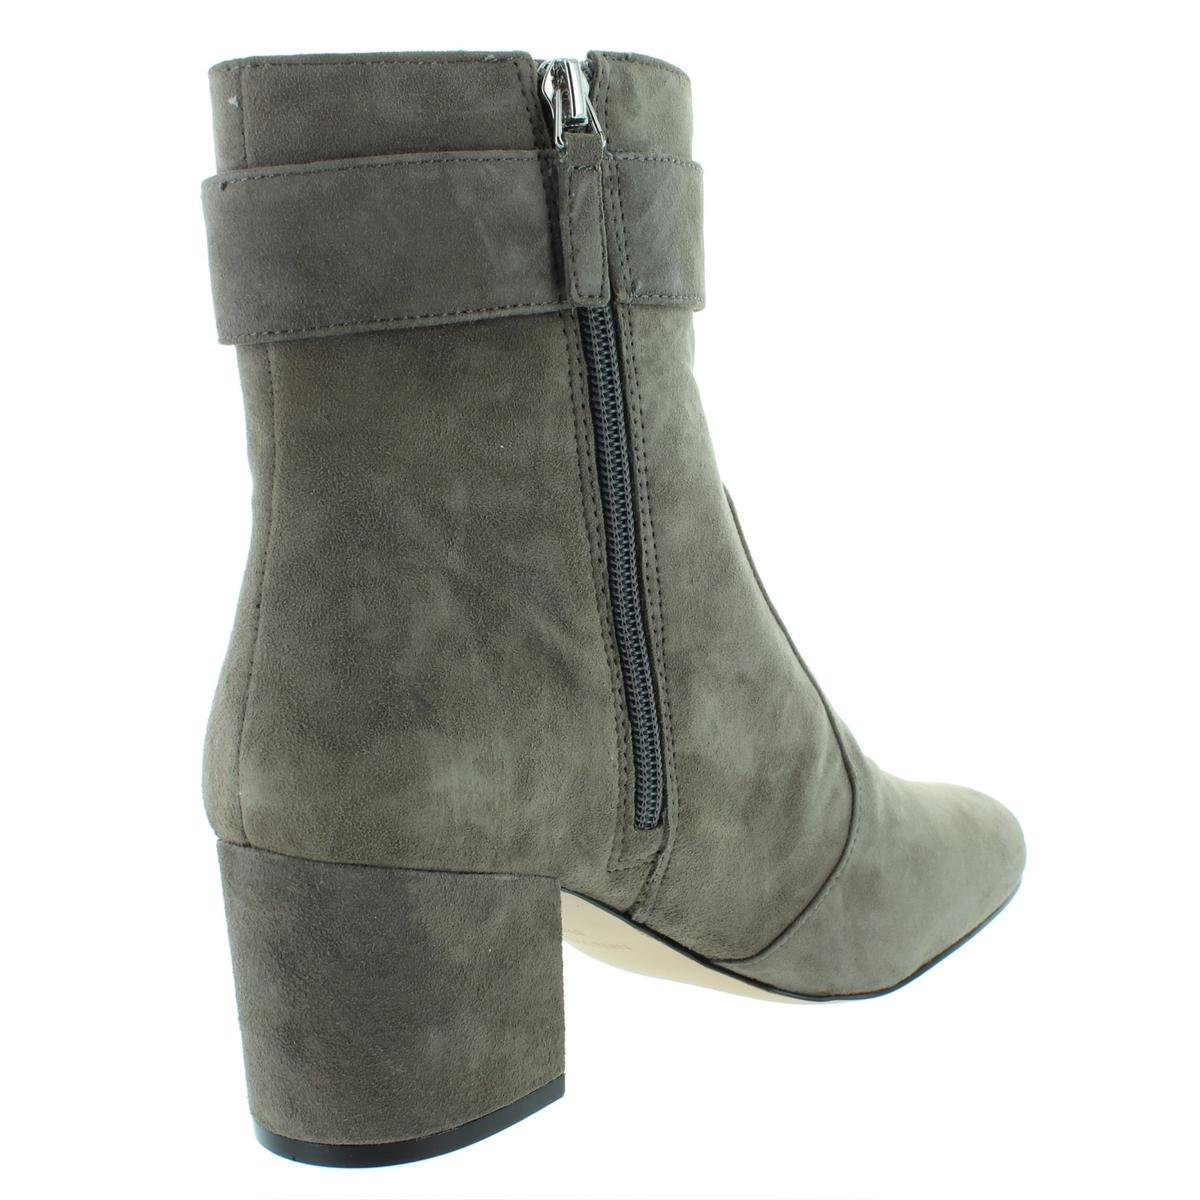 Nine West Womens Quilby Suede Block Heel Ankle Booties Shoes BHFO 7050